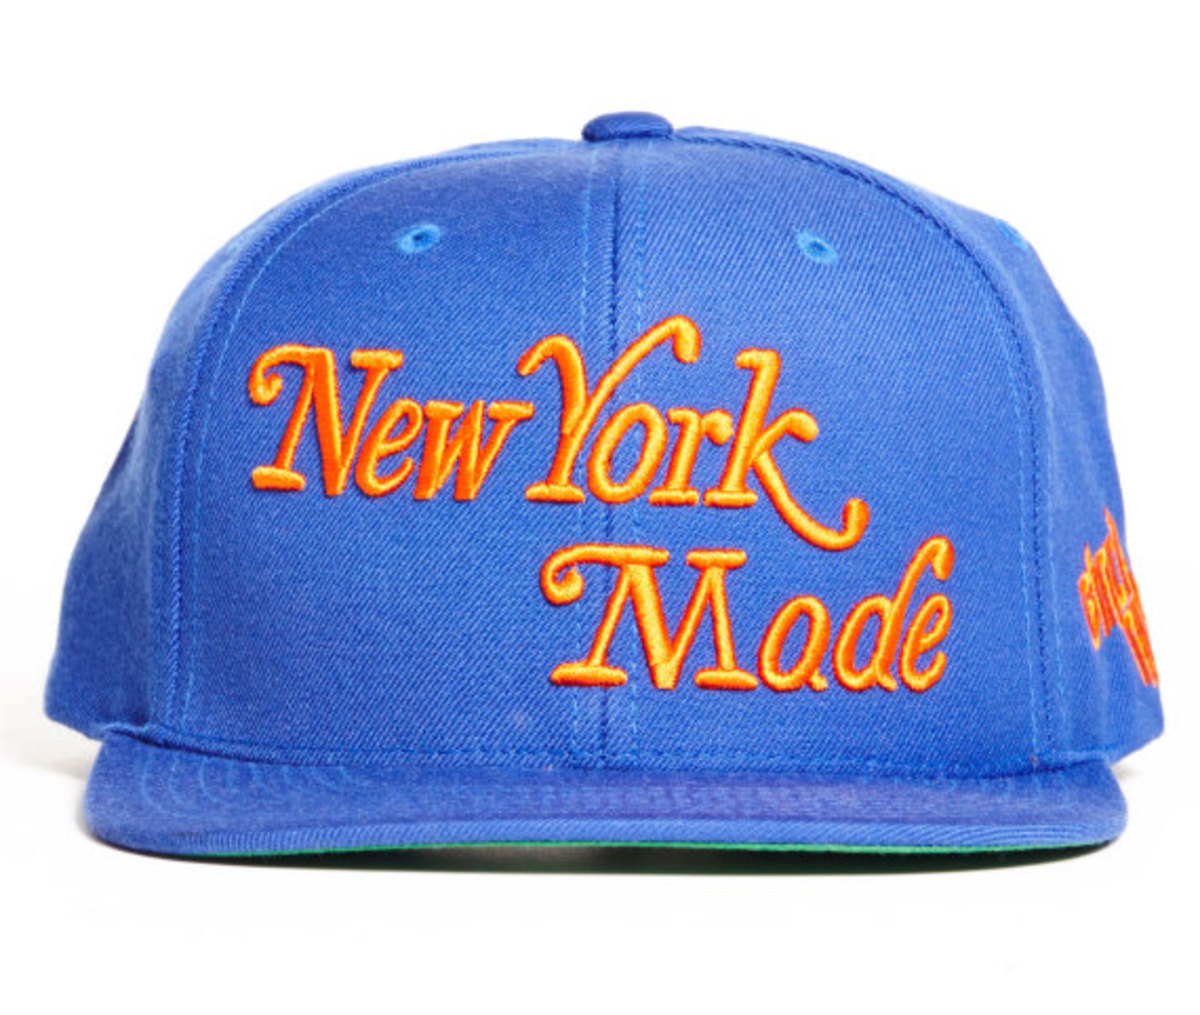 Public School: Black Apple x New York Knicks - Fall/Winter 2014 Capsule Collection - 14